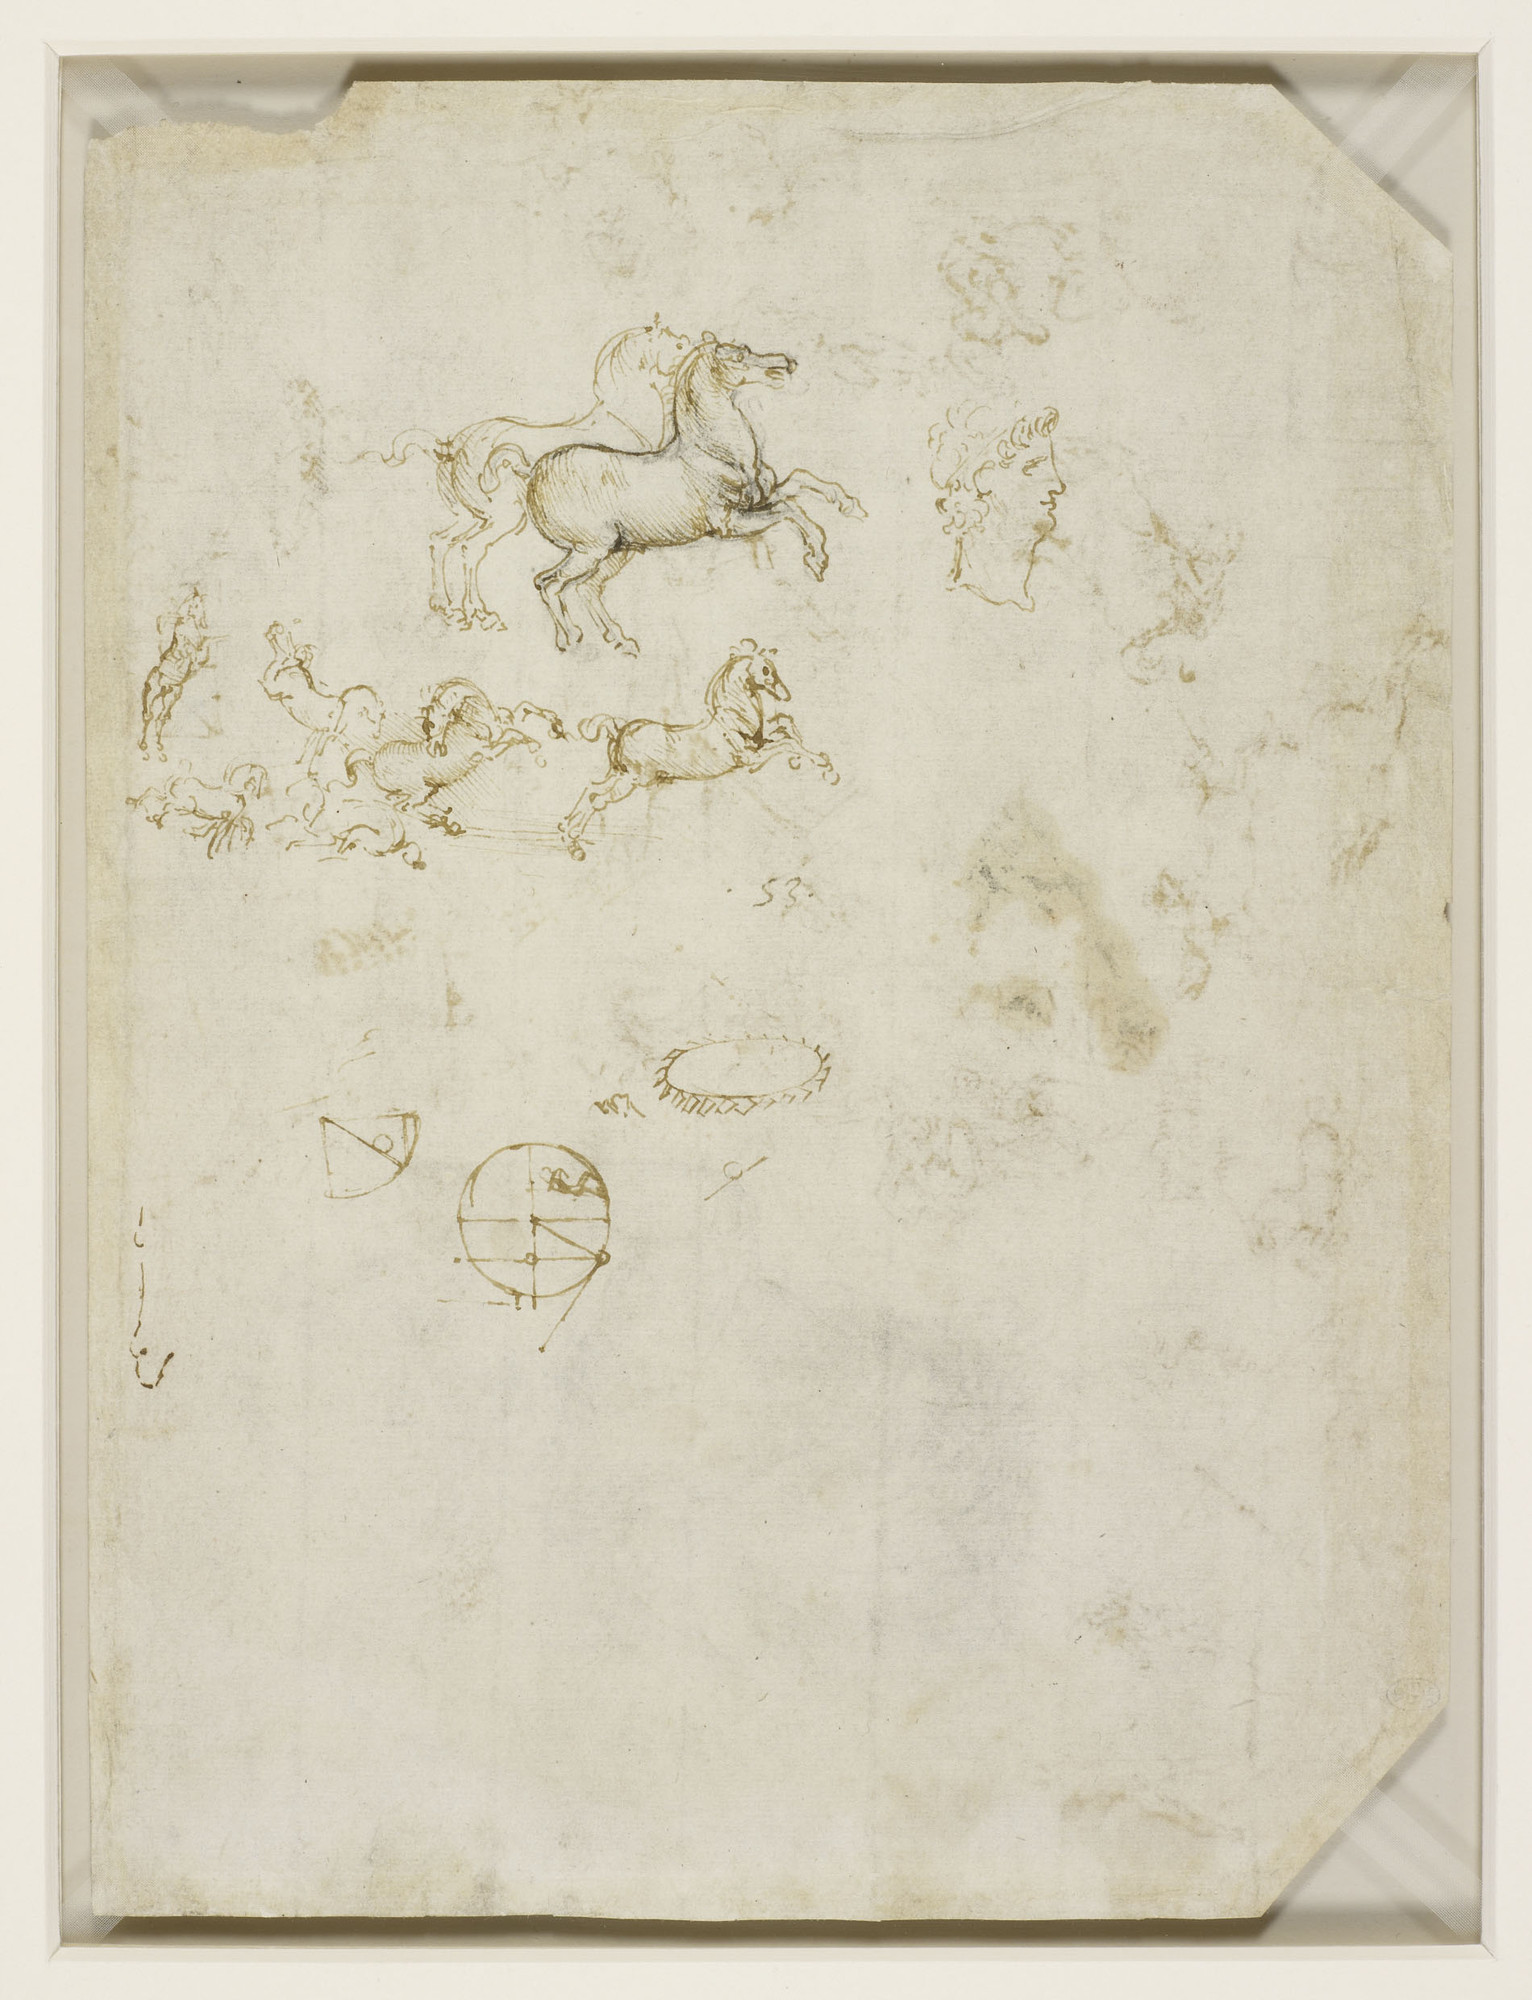 Leonardo da Vinci - Drawings - Animals -Horse head and Face in profile.jpg